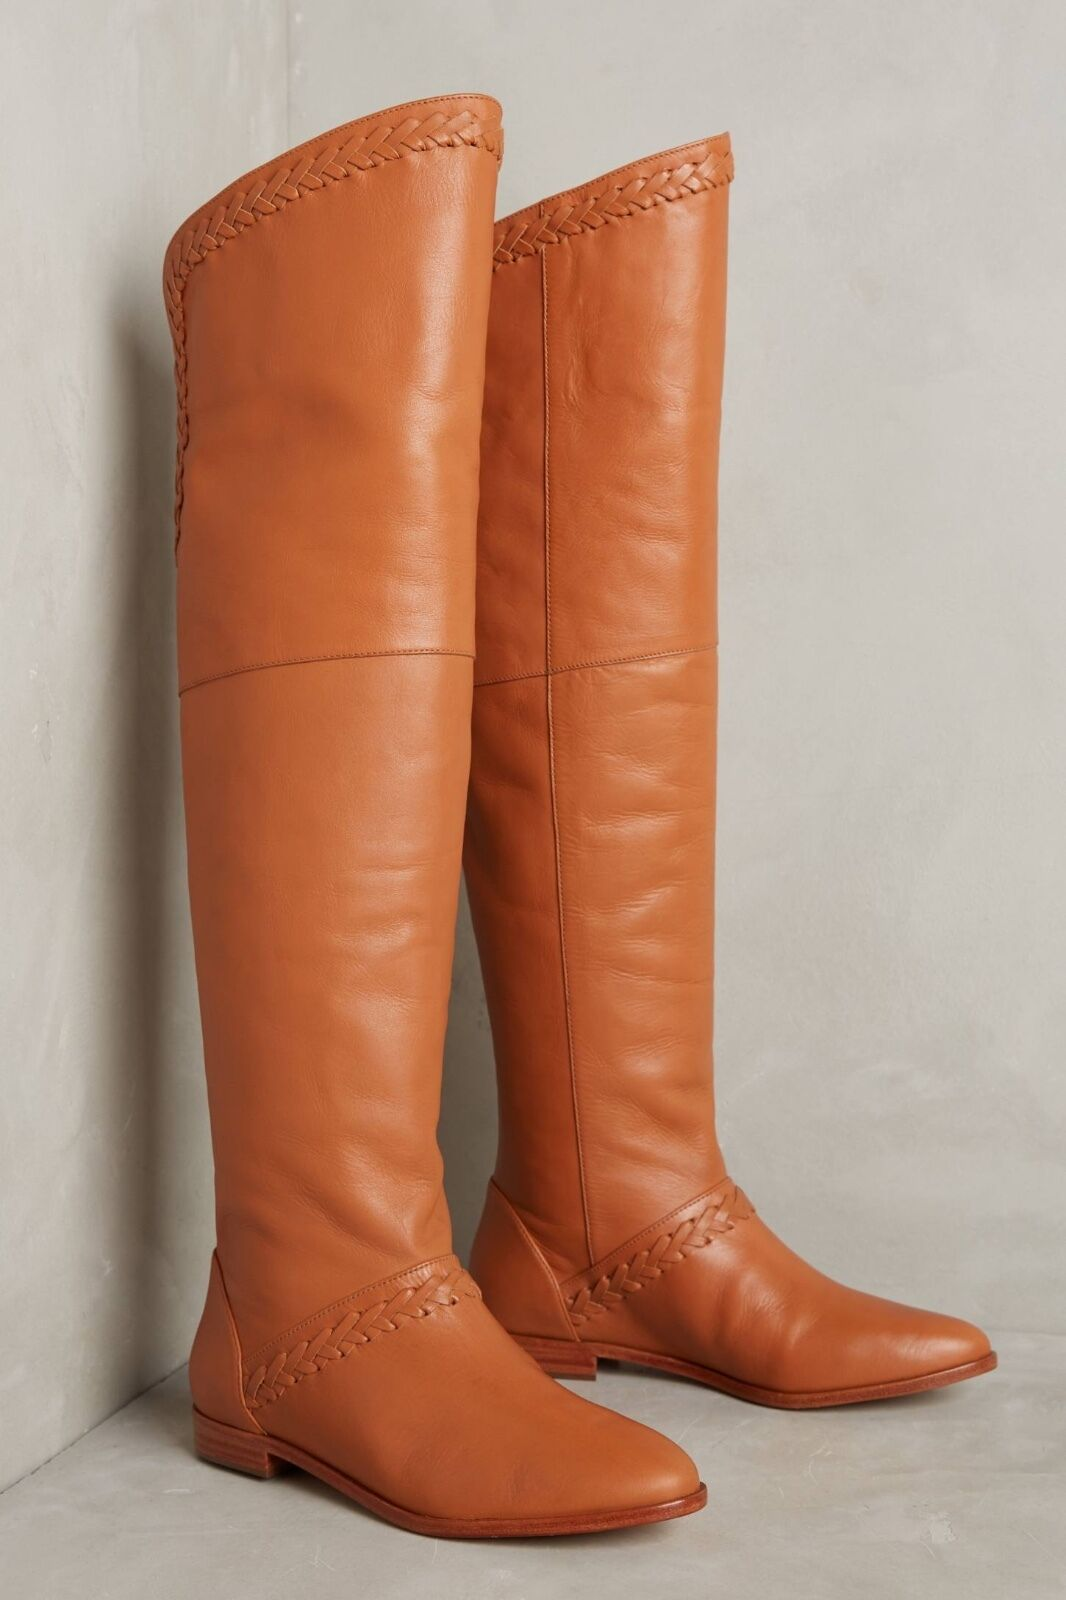 NIB  368.00 Anthropologie Candela Braided Riding Boot Boot Boot 7.5  Honey  6d6f92